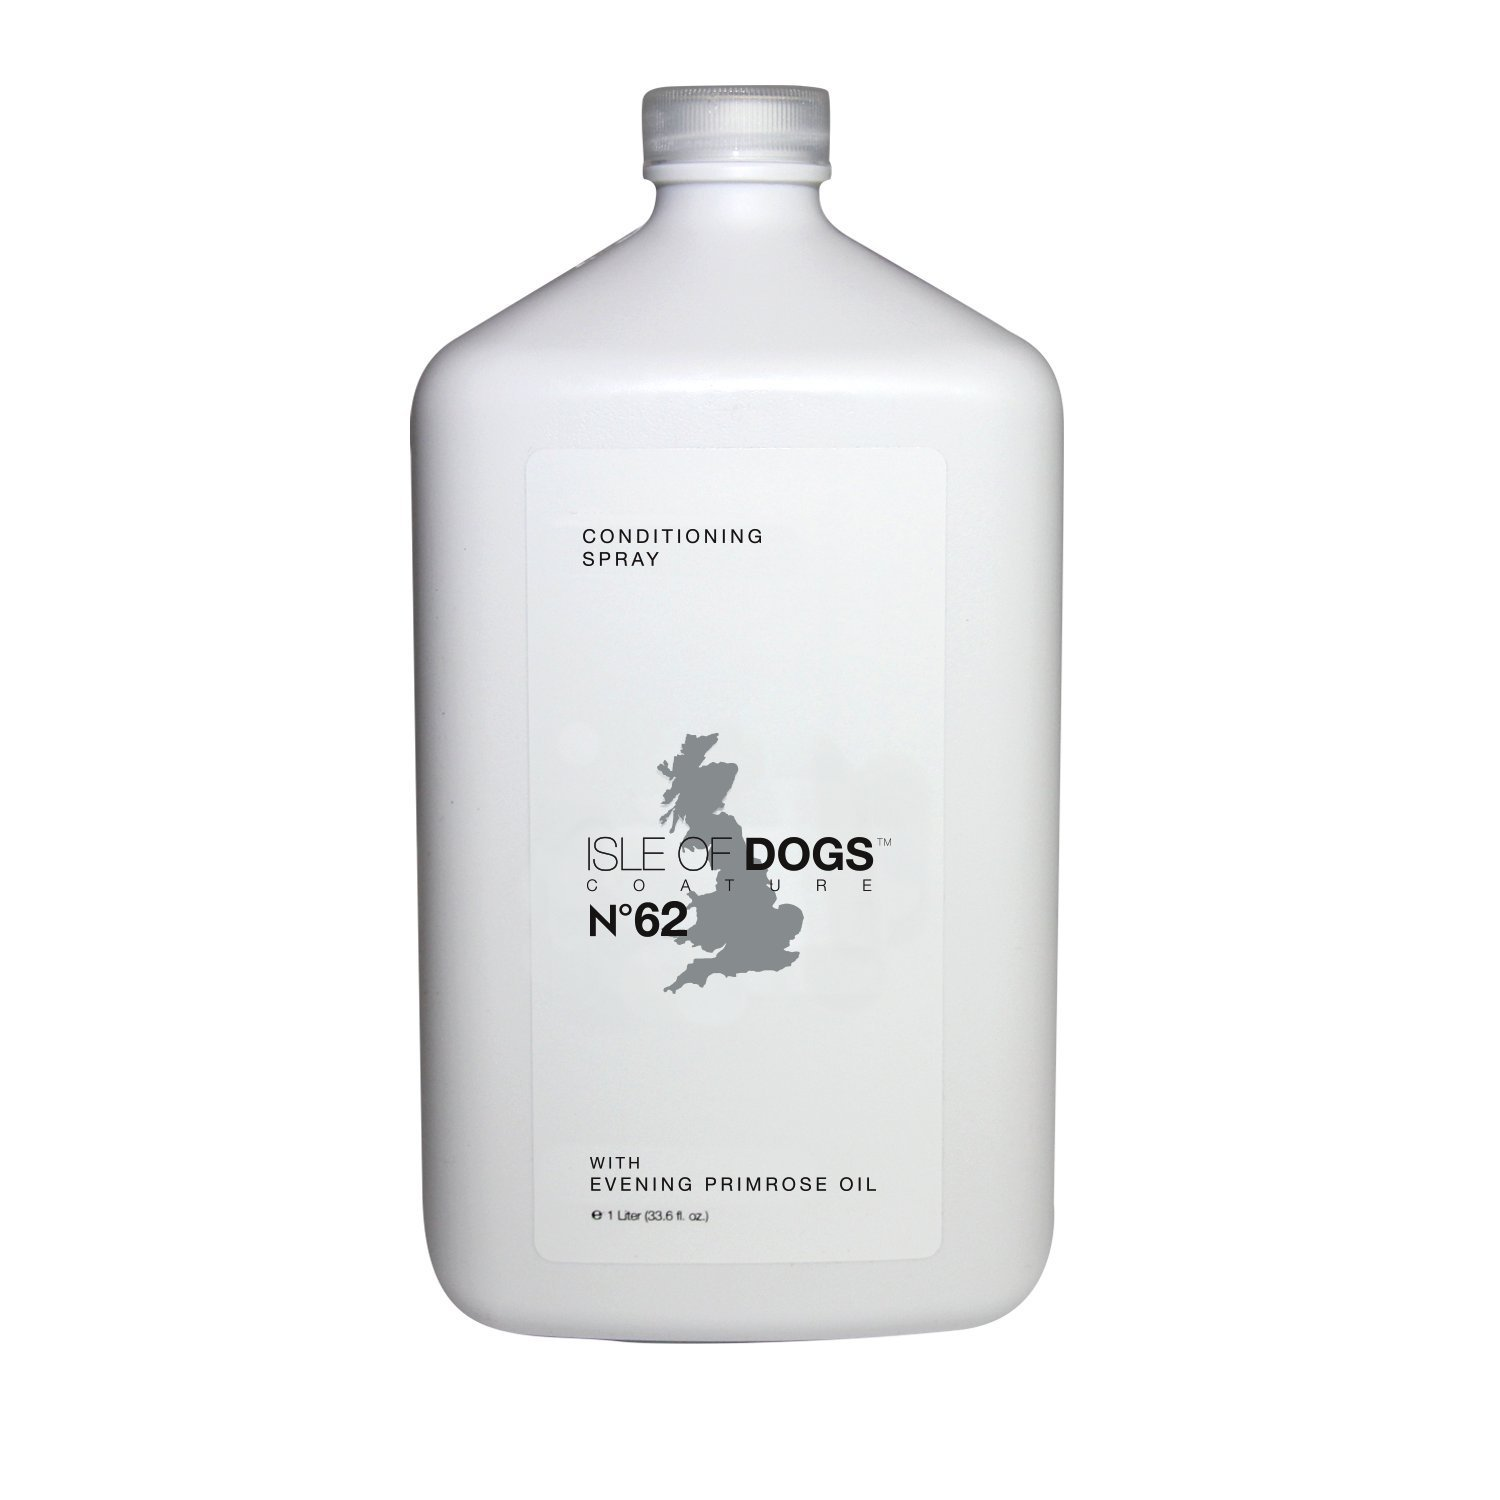 Isle of Dogs Coature No. 62 Evening Primrose Oil Dog Conditioning Mist for Dry or Sensitive Skin, 1 Liter by Isle of Dogs